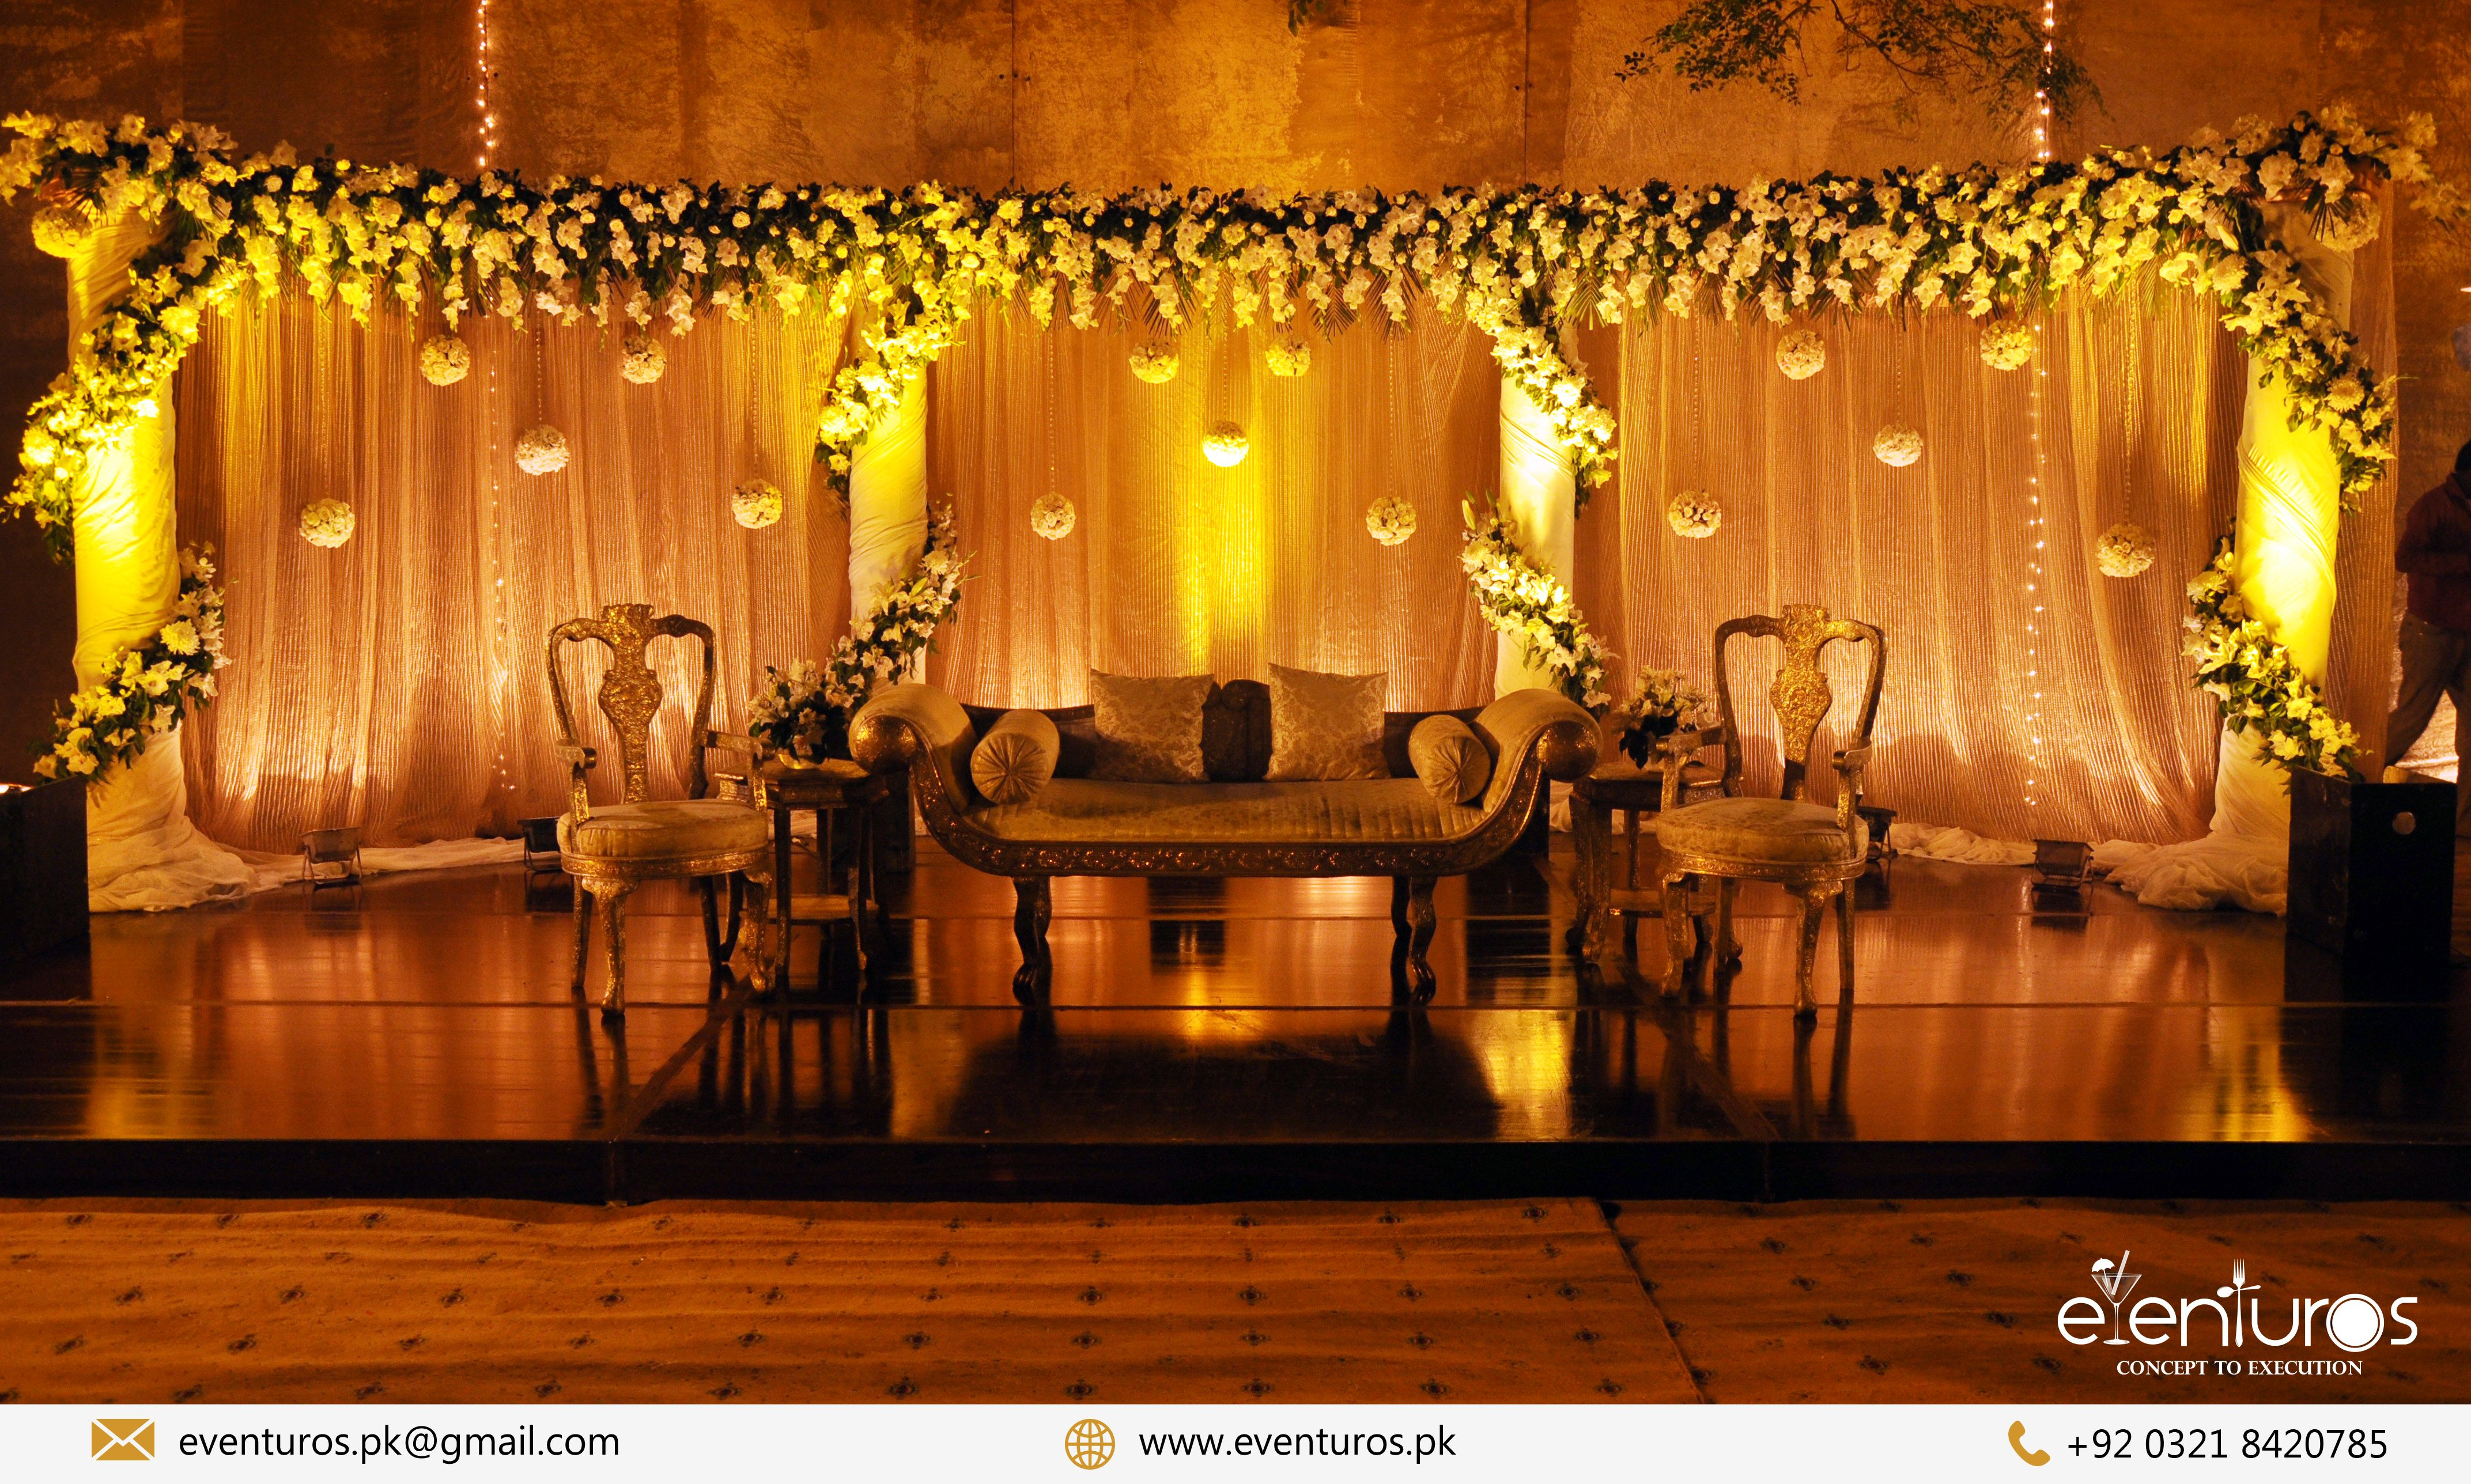 Booking now for pre wedding planning eventuros events pr is in booking now for pre wedding planning eventuros events pr is in the business of planning unforgettable weddings our philosophy is simple create junglespirit Images